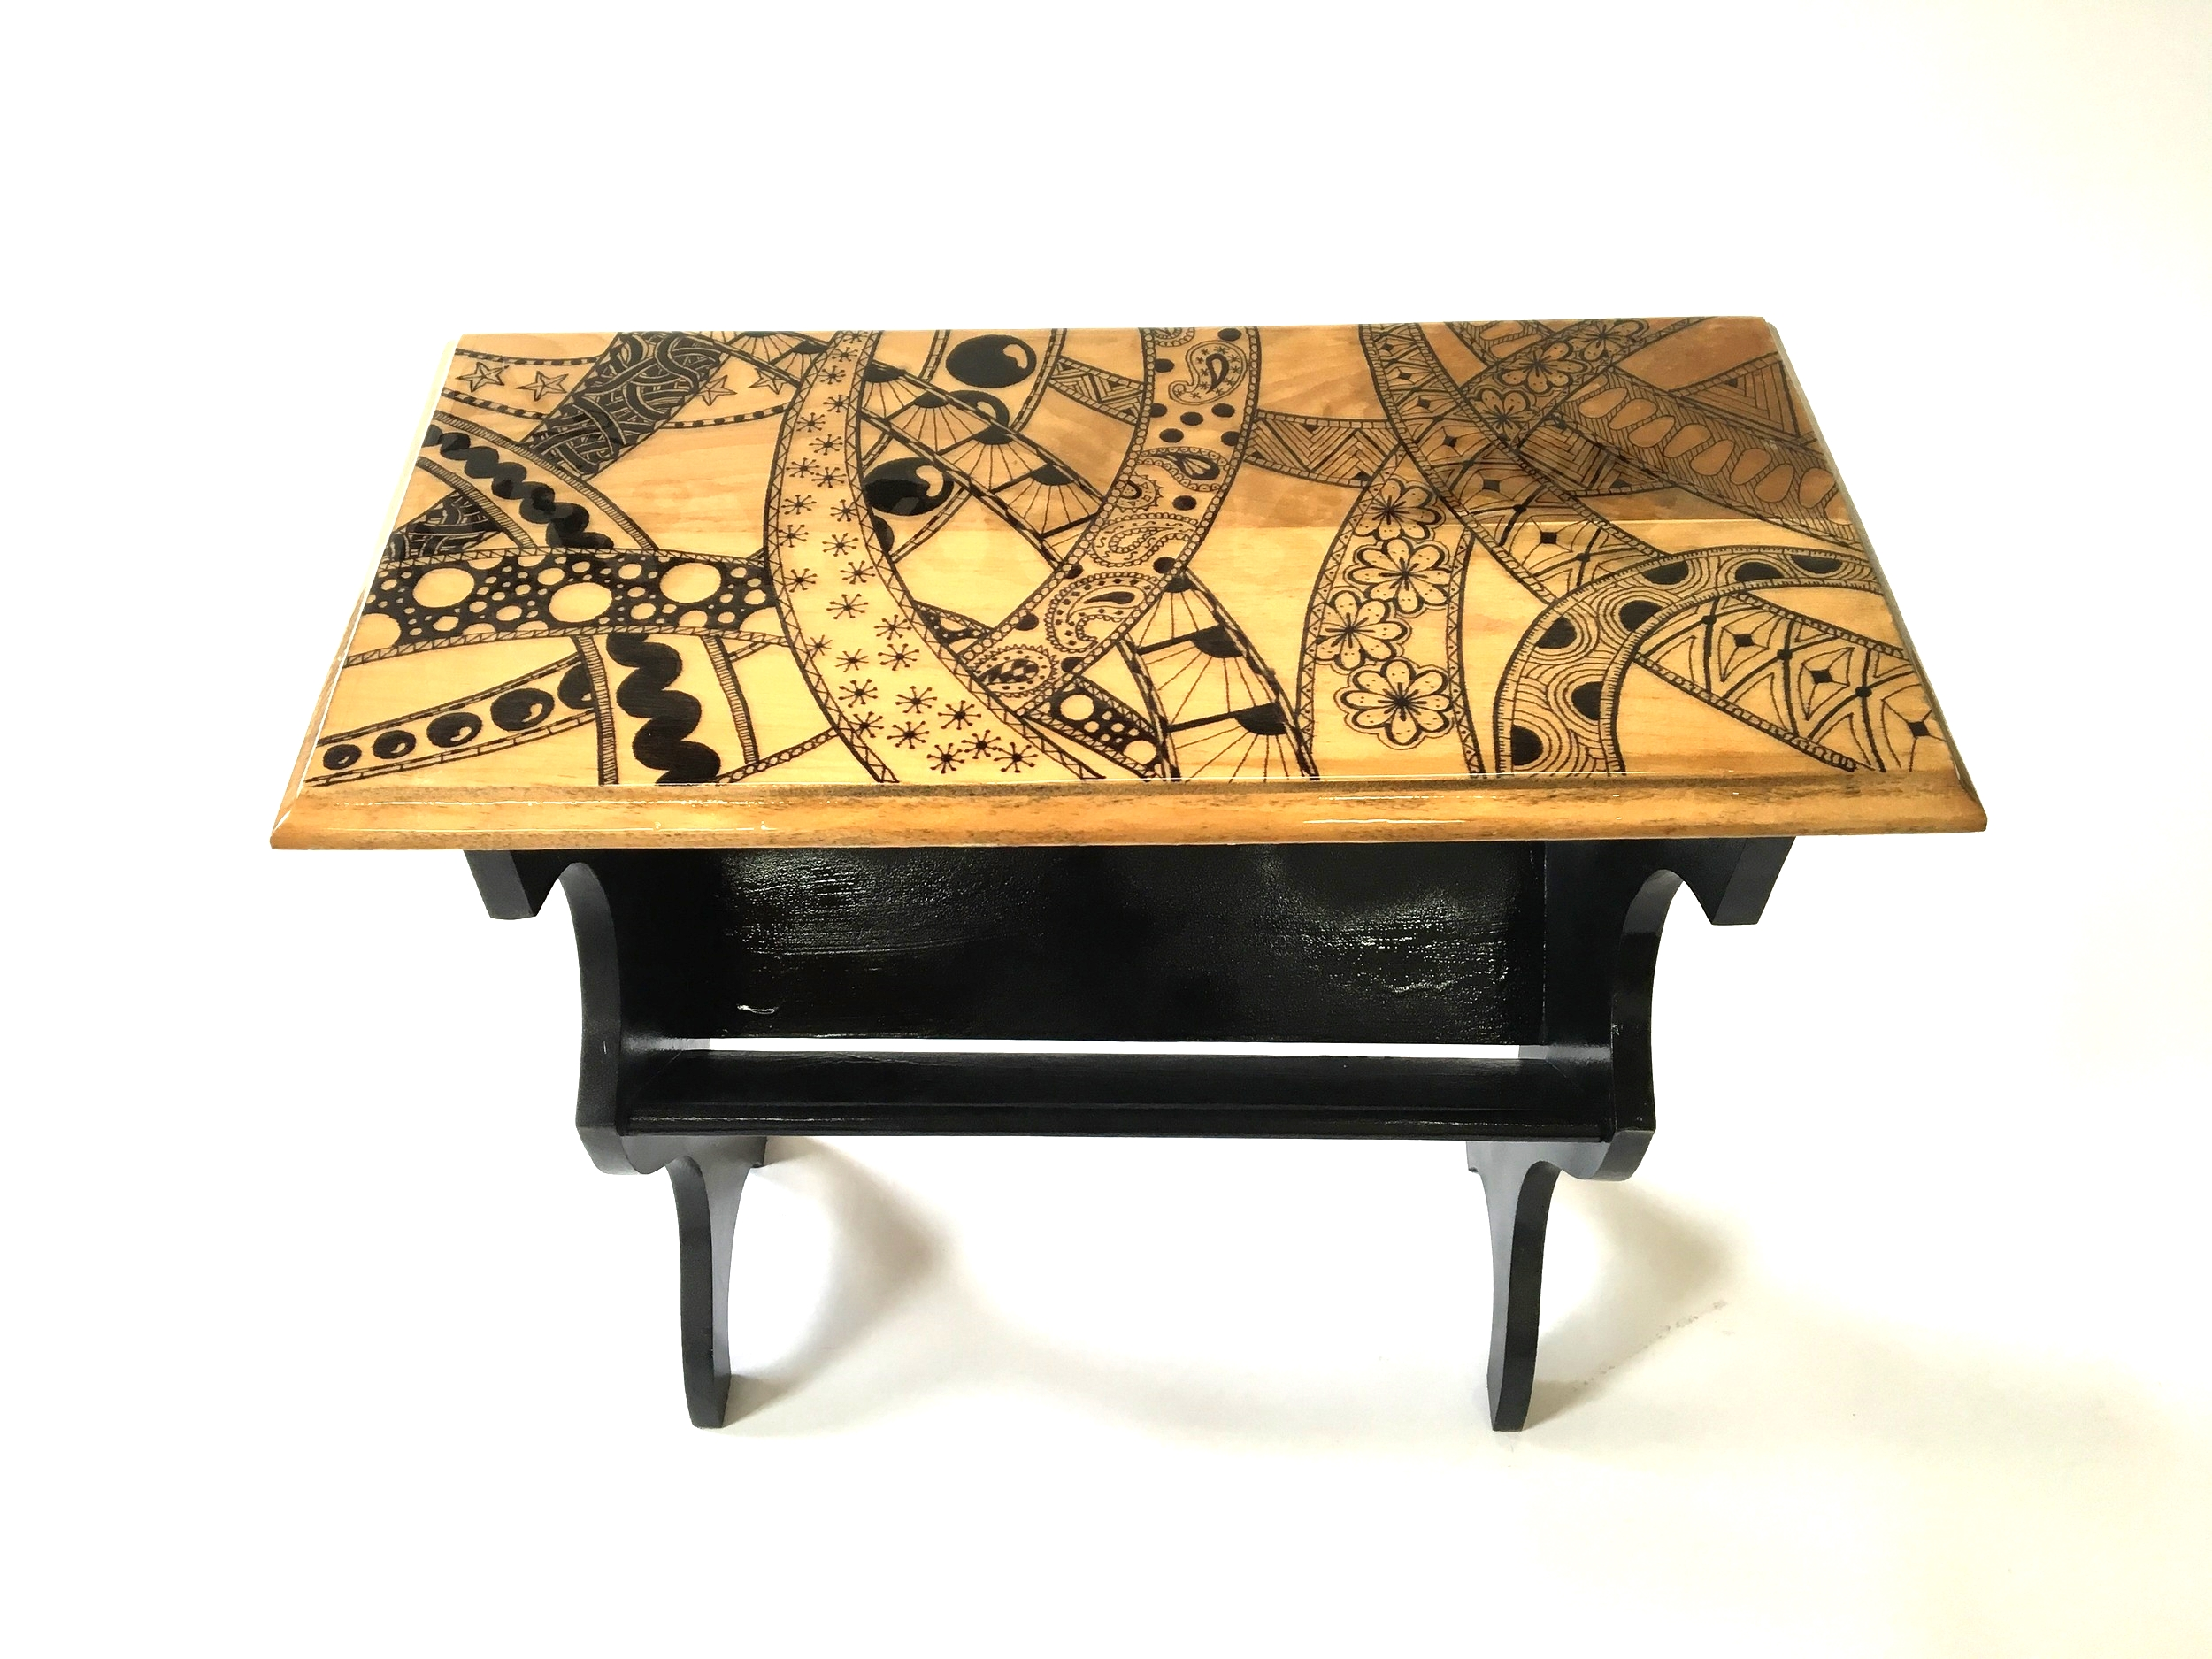 Magazine Table $250 (SOLD)